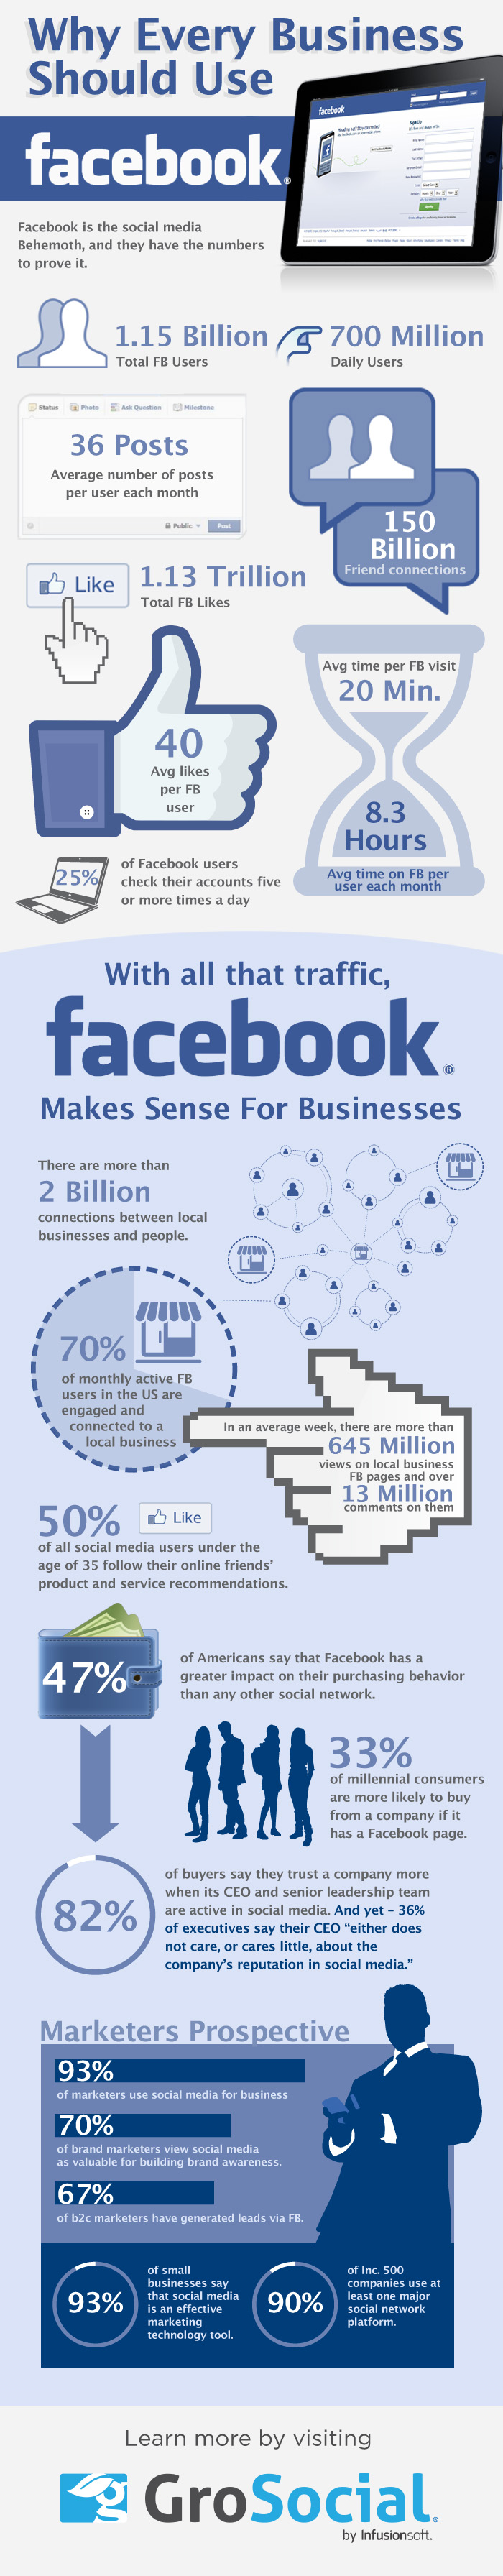 How to use facebook - How To Use Facebook 58